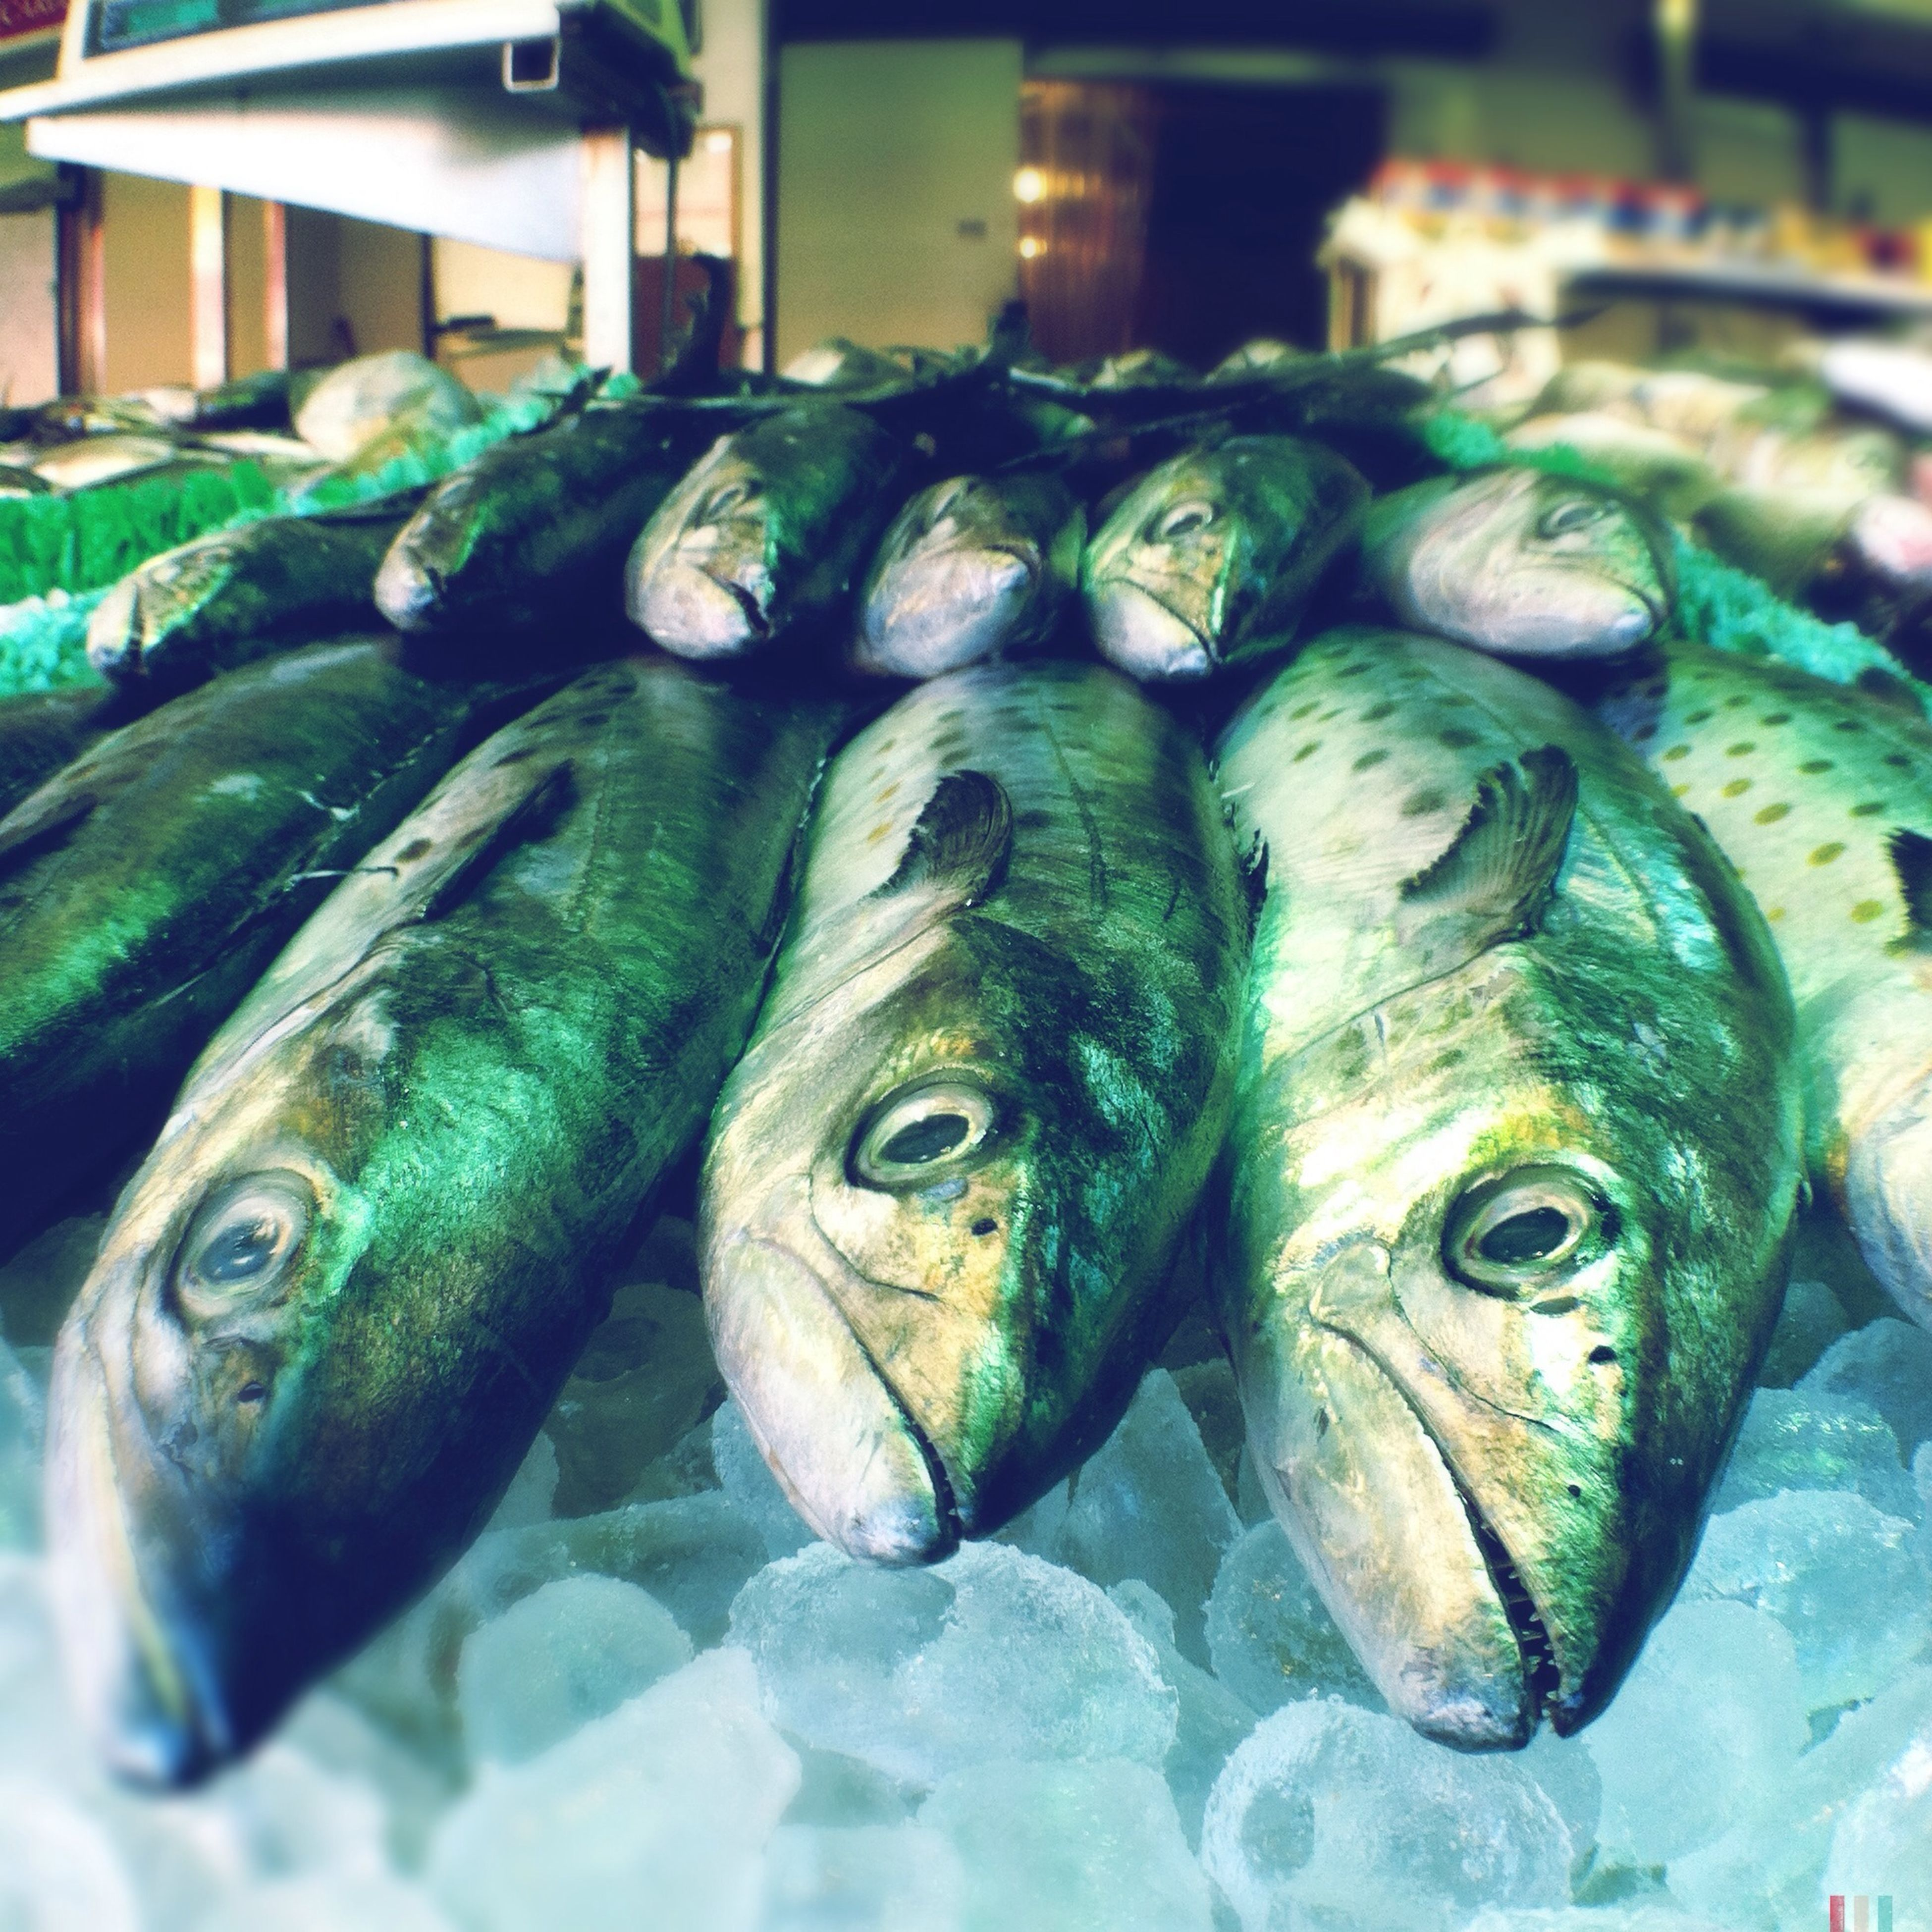 for sale, retail, fish, market stall, seafood, market, food, food and drink, large group of objects, sale, indoors, abundance, freshness, choice, variation, close-up, display, healthy eating, dead animal, fish market